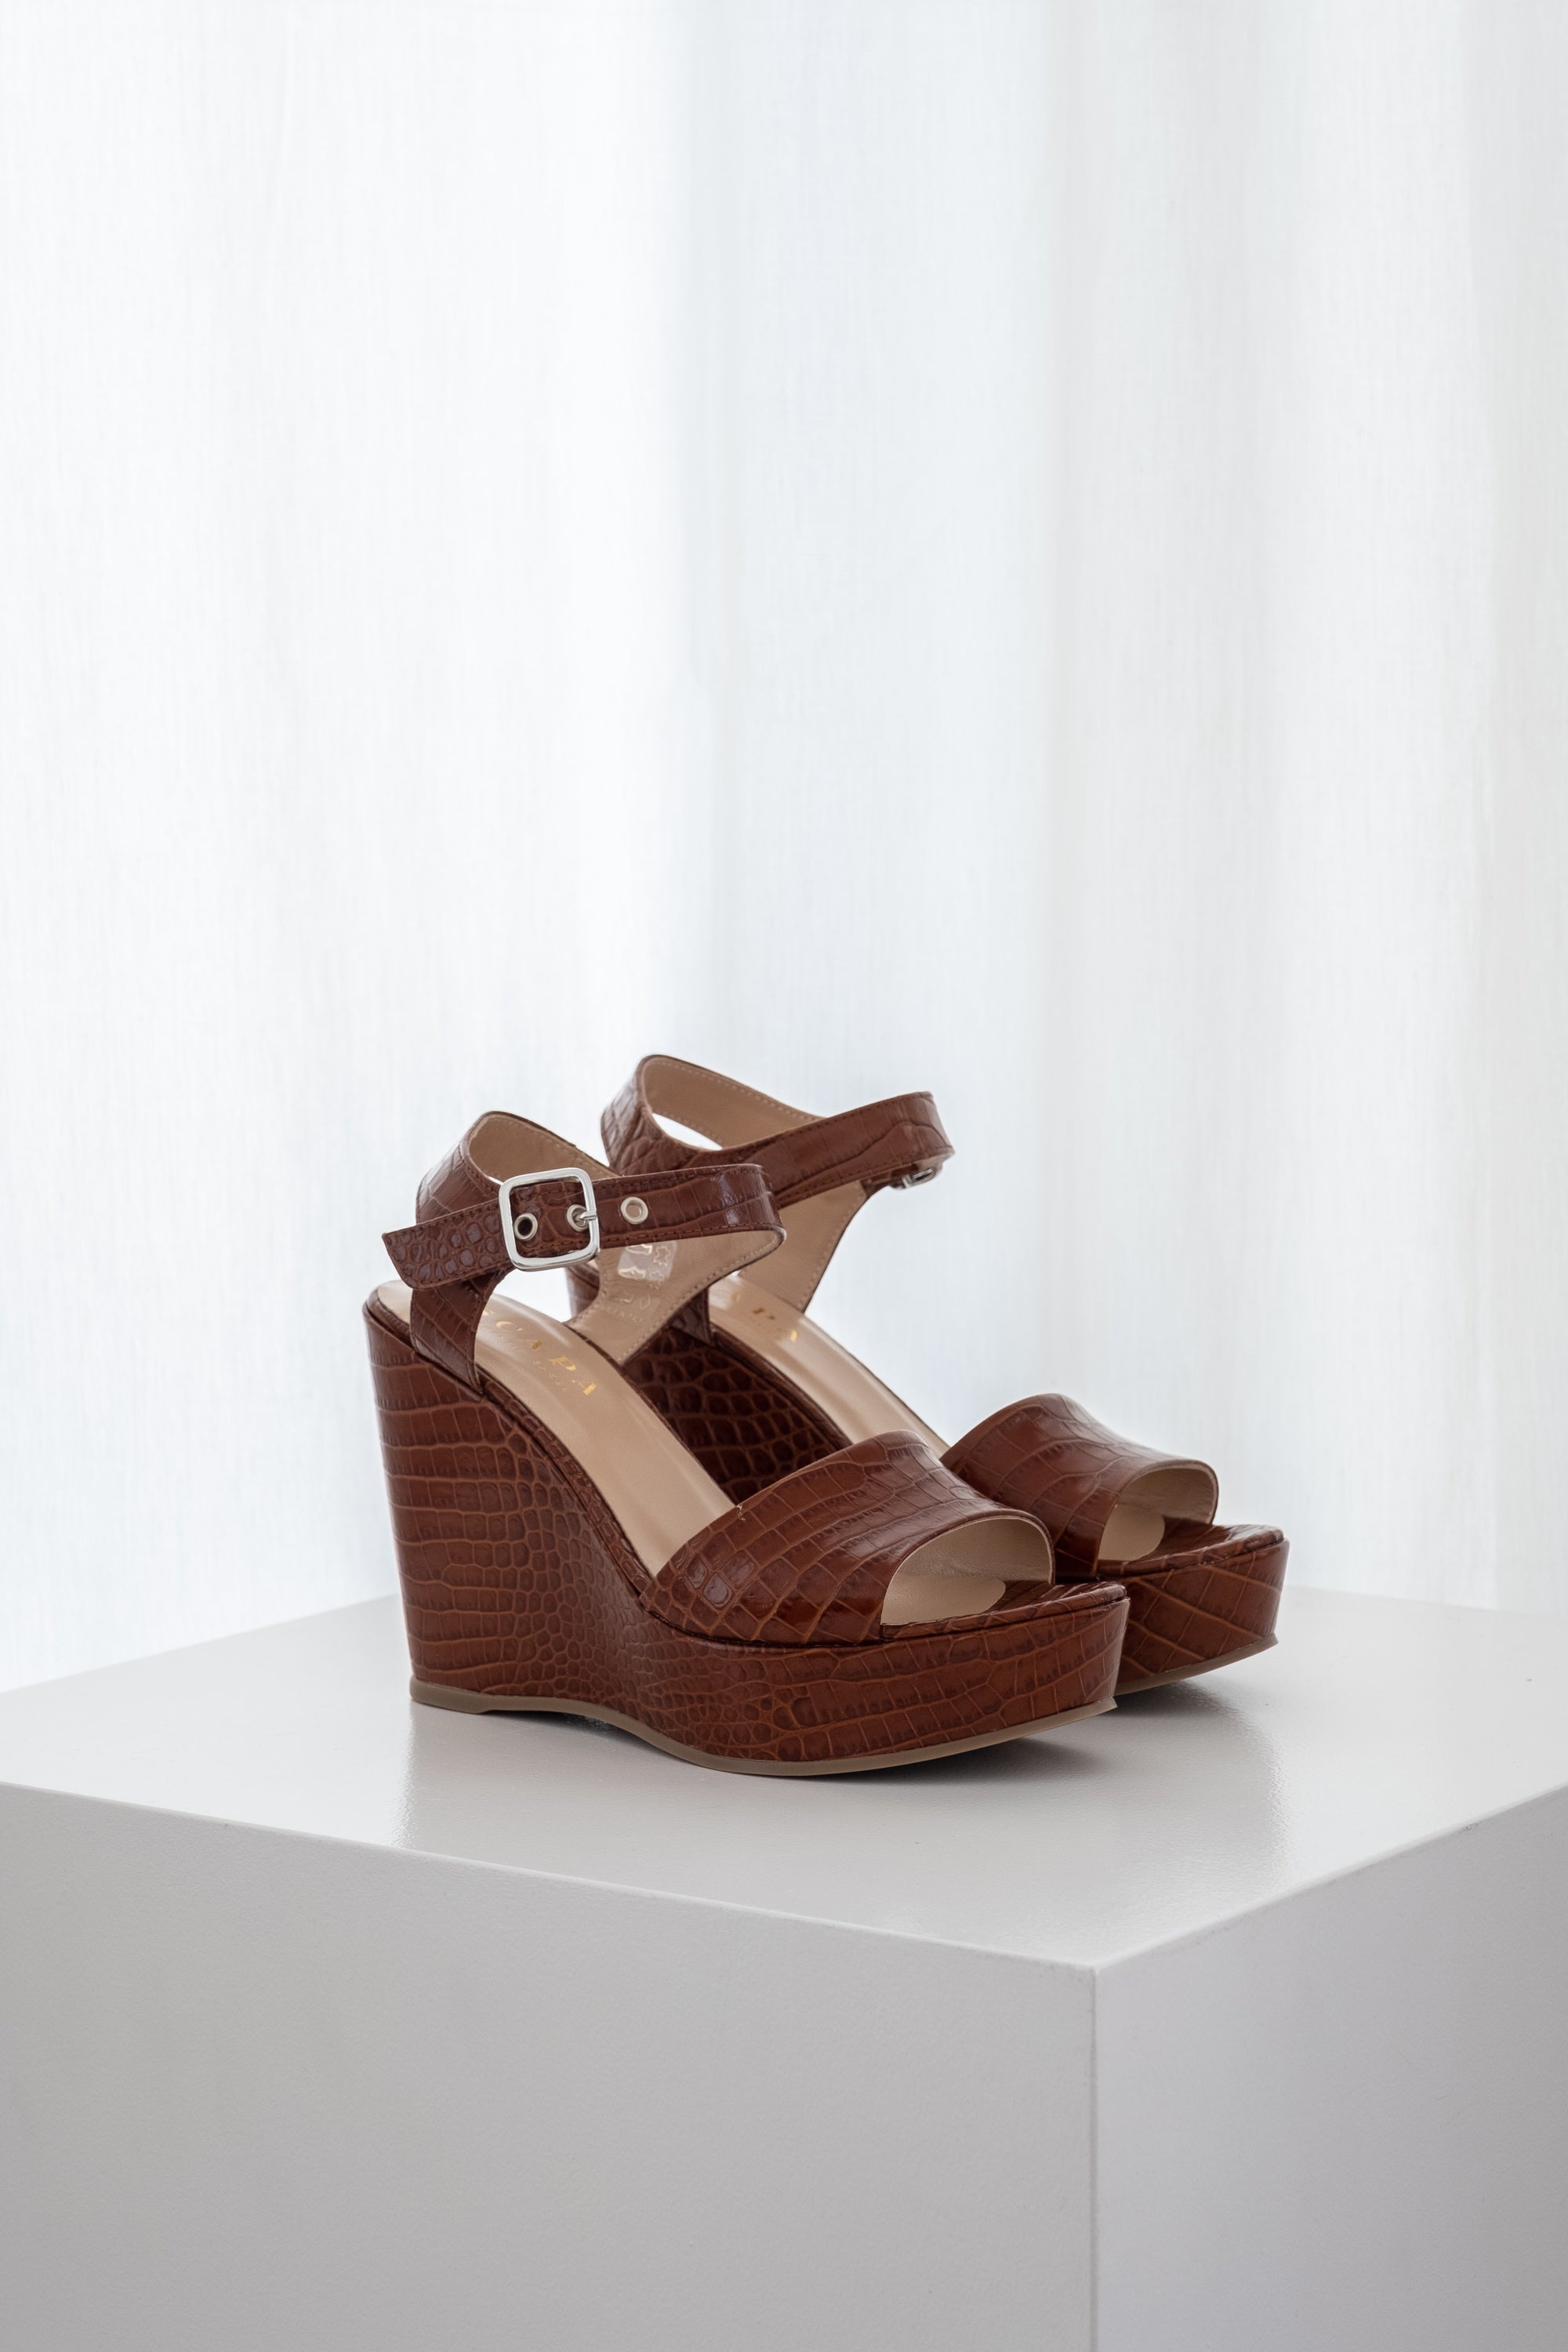 PLATFORM SANDAL BUONES AIRES - Shoes - SCAPA FASHION - SCAPA OFFICIAL